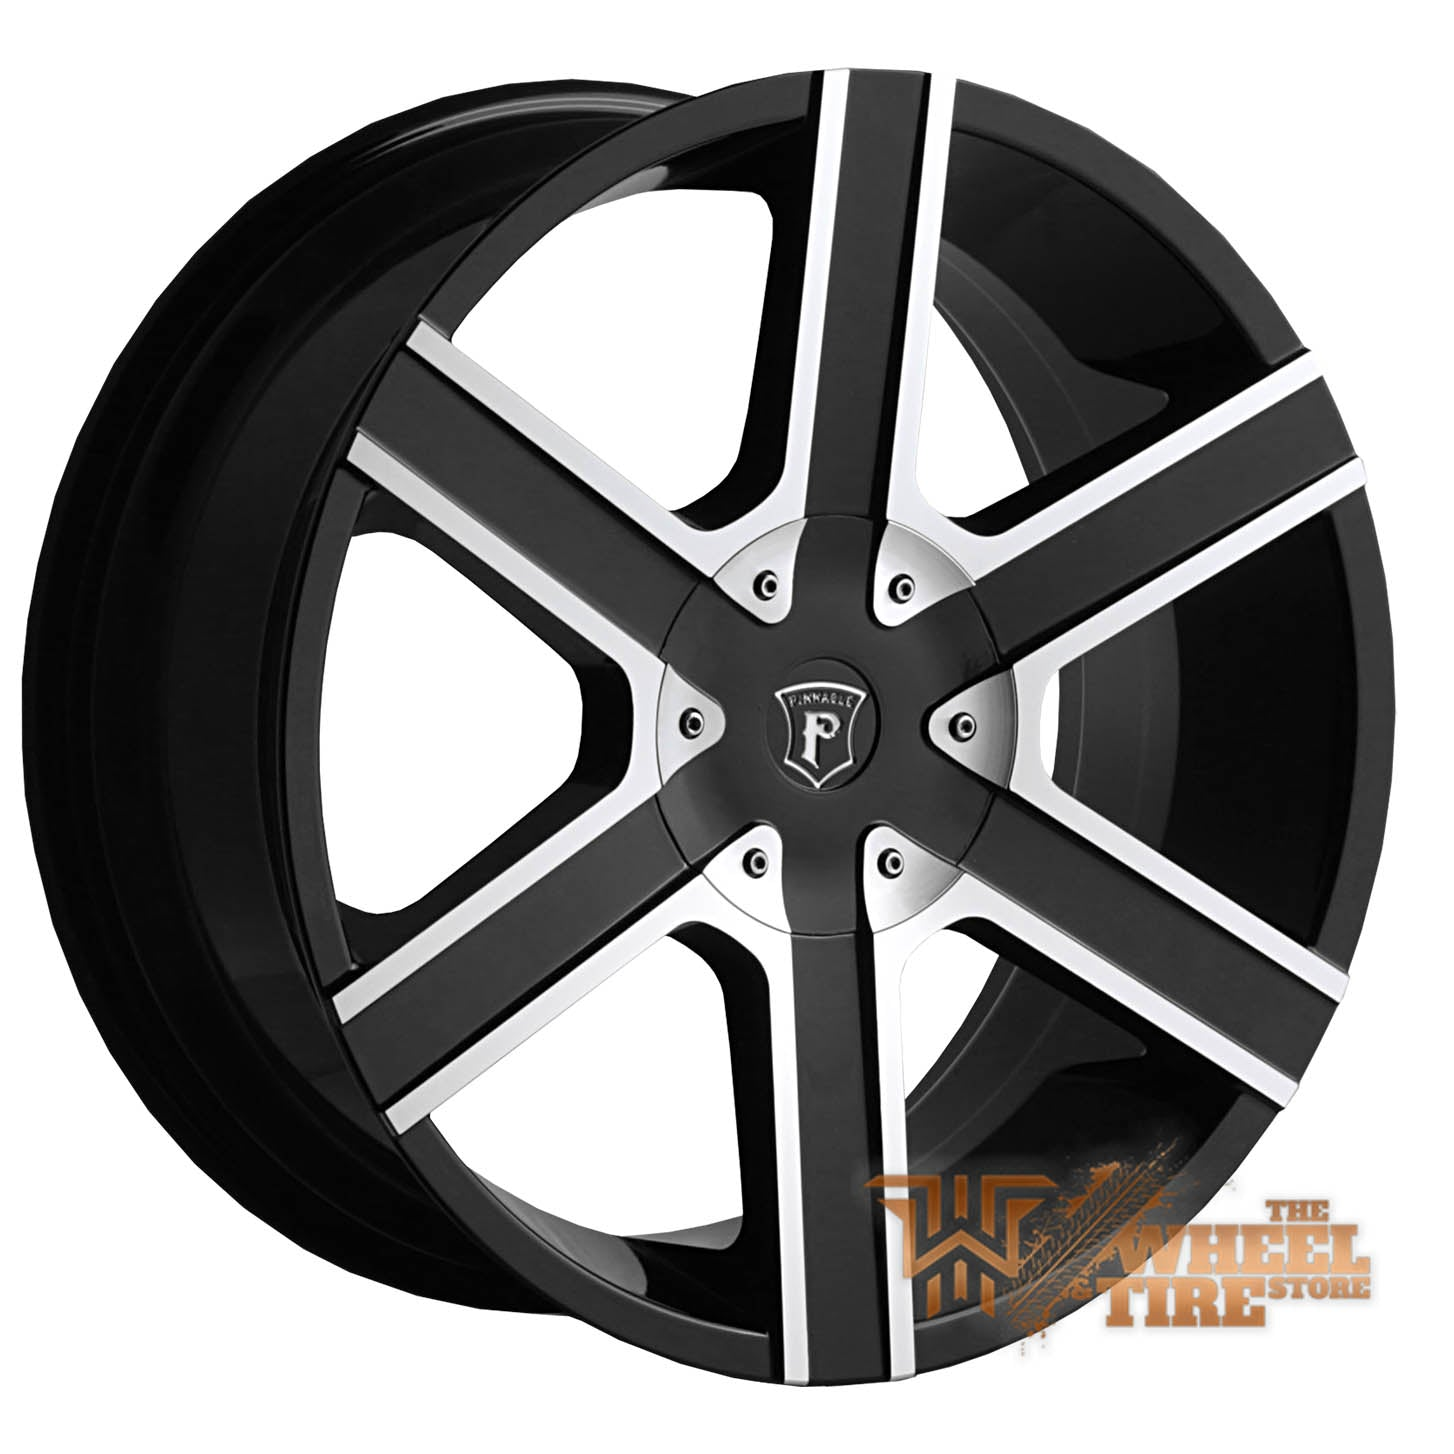 Pinnacle P92 'Gallant' Wheel in Gloss Black Machined (Set of 4)